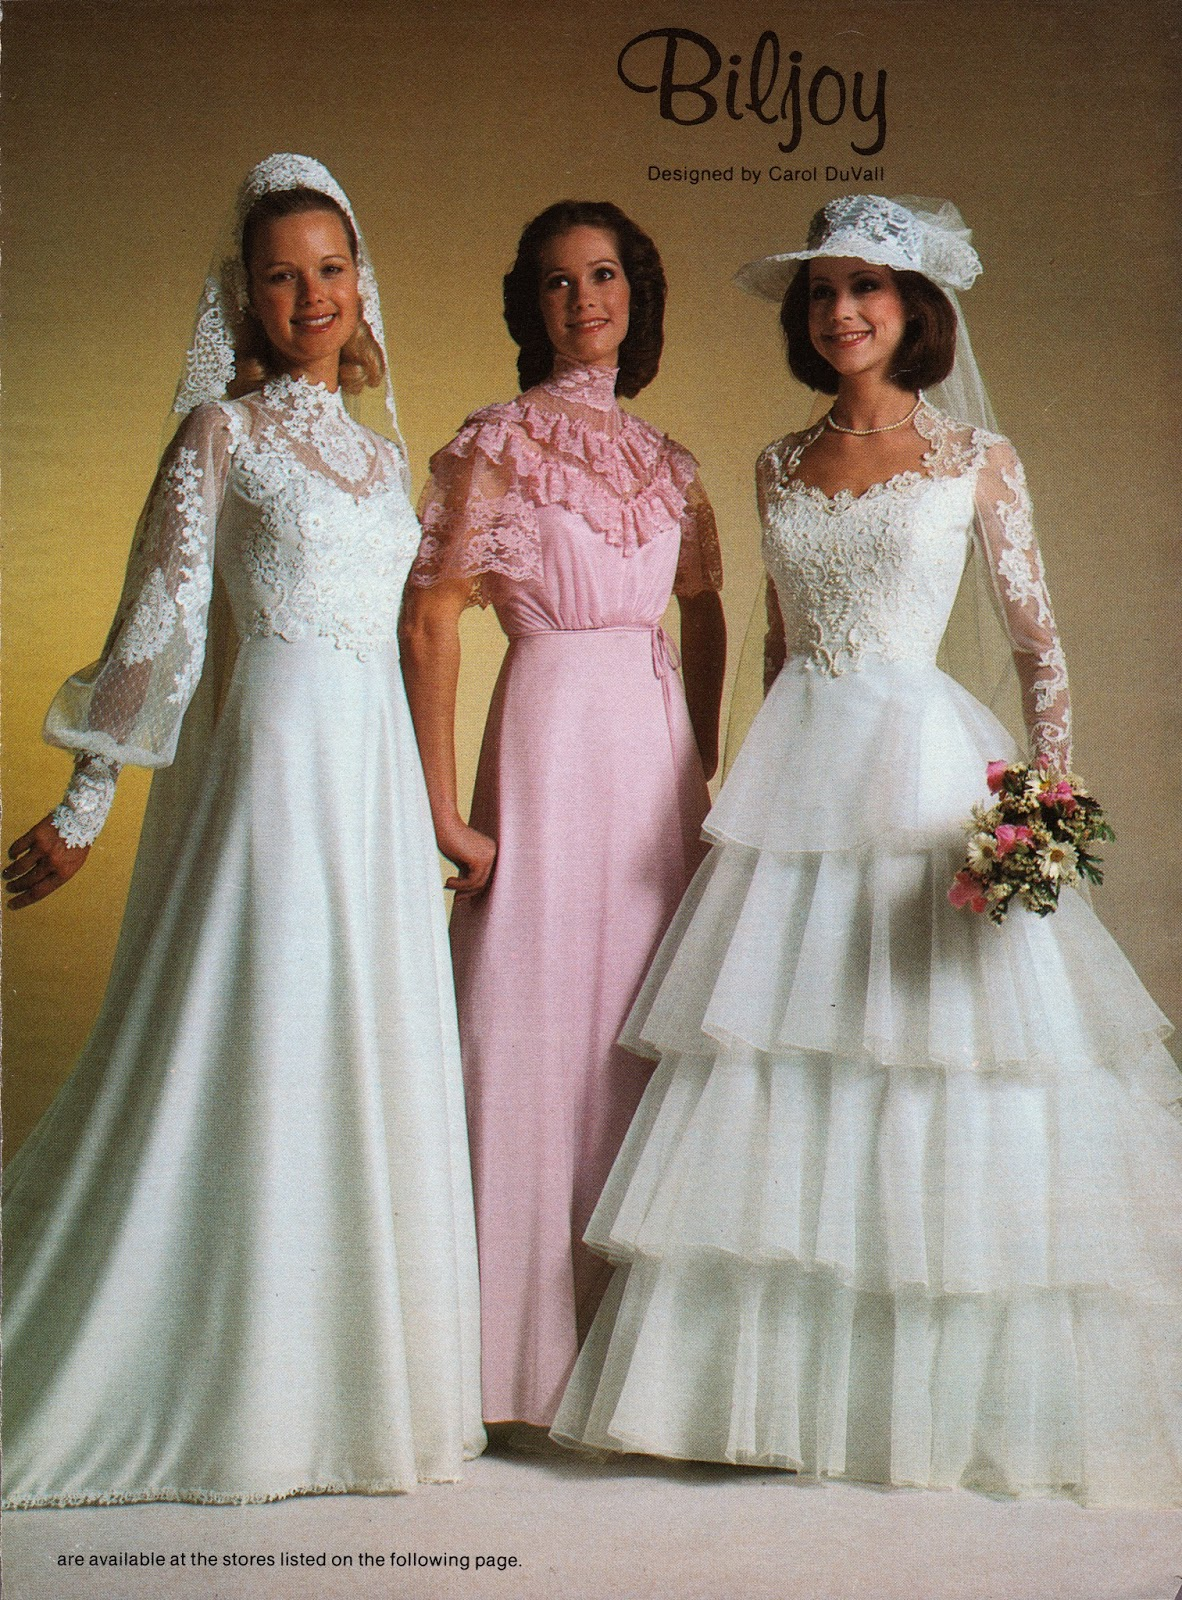 843cf65b226 ... the wedding dresses tended to the more traditional. Hmmm